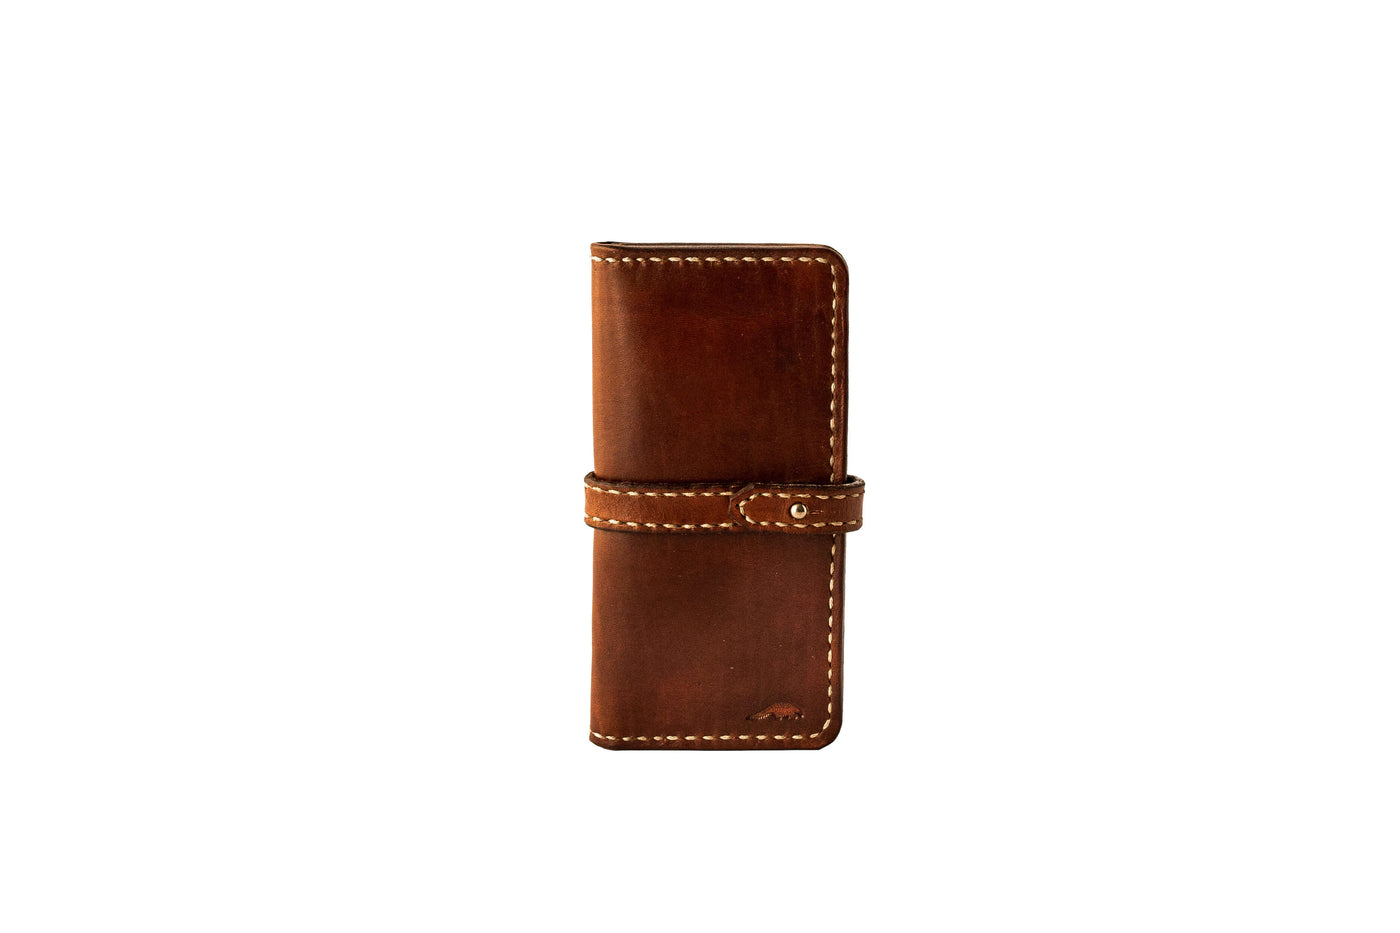 The Long Wallet